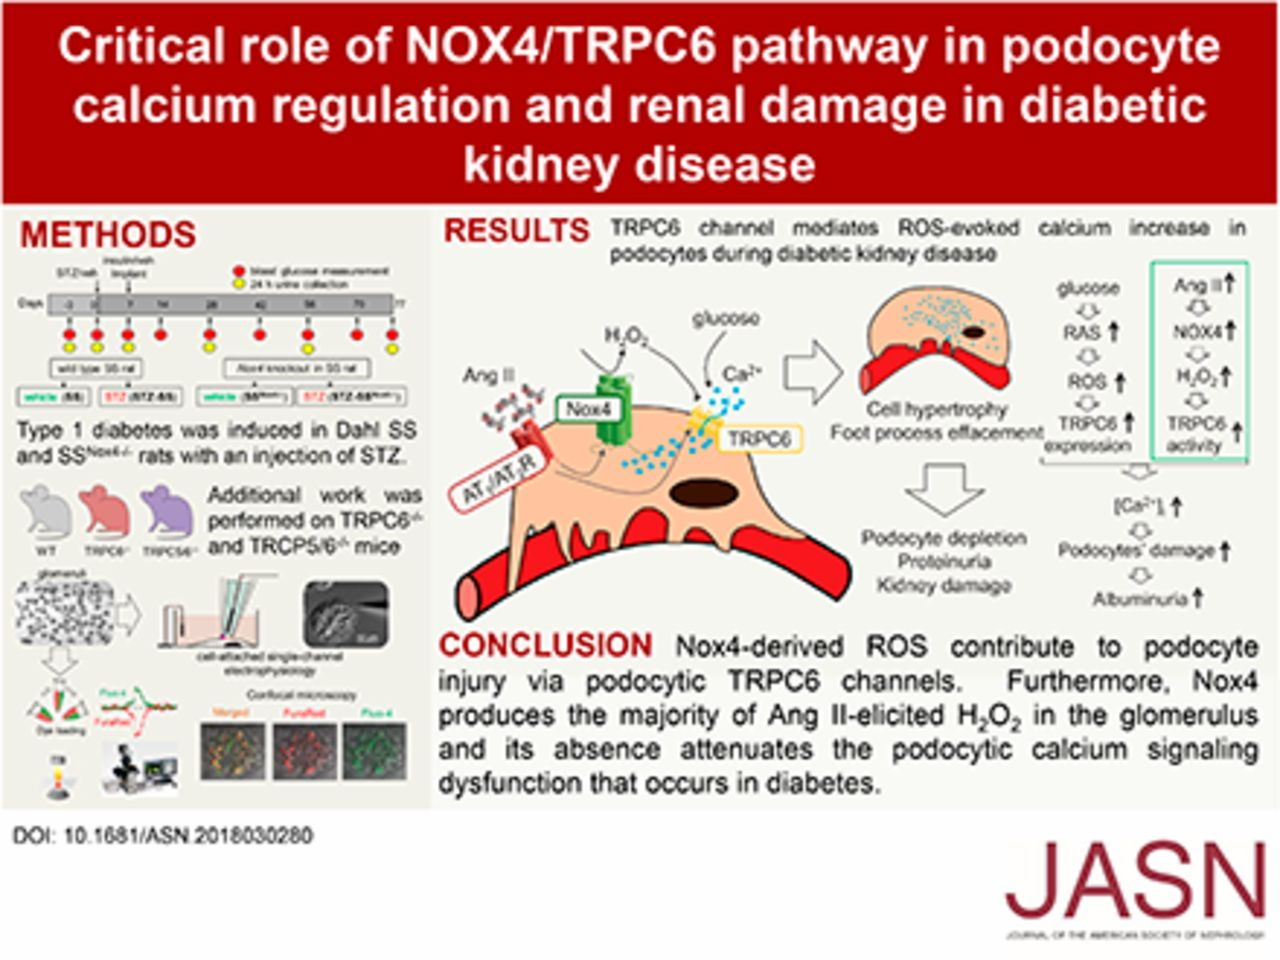 A NOX4/TRPC6 Pathway in Podocyte Calcium Regulation and